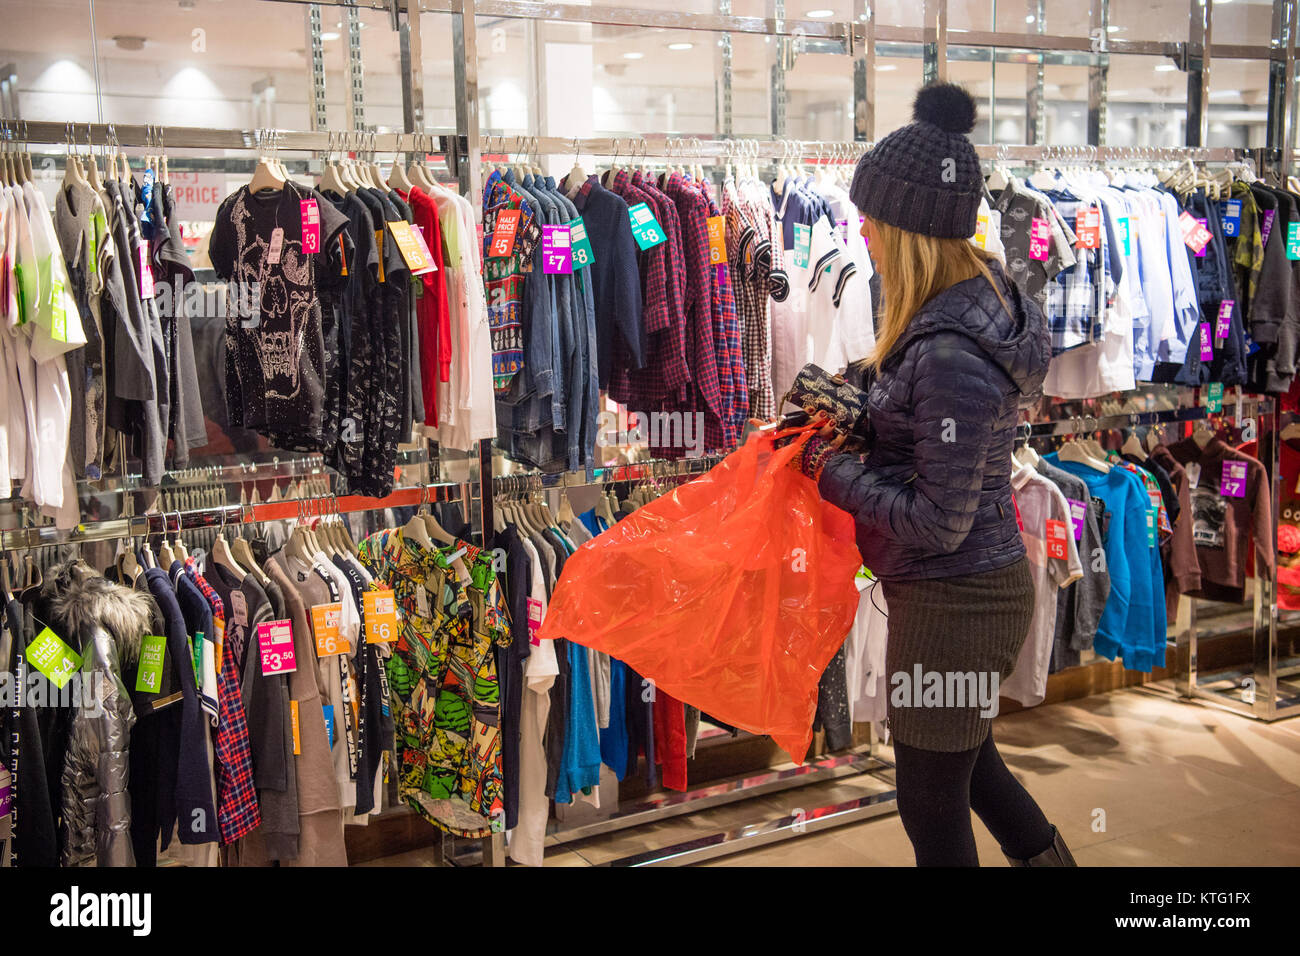 Aberystwyth Wales UK. Boxing Day,  Tuesday 26 December 2017  Hundreds of people looking for bargains on clothes Stock Photo